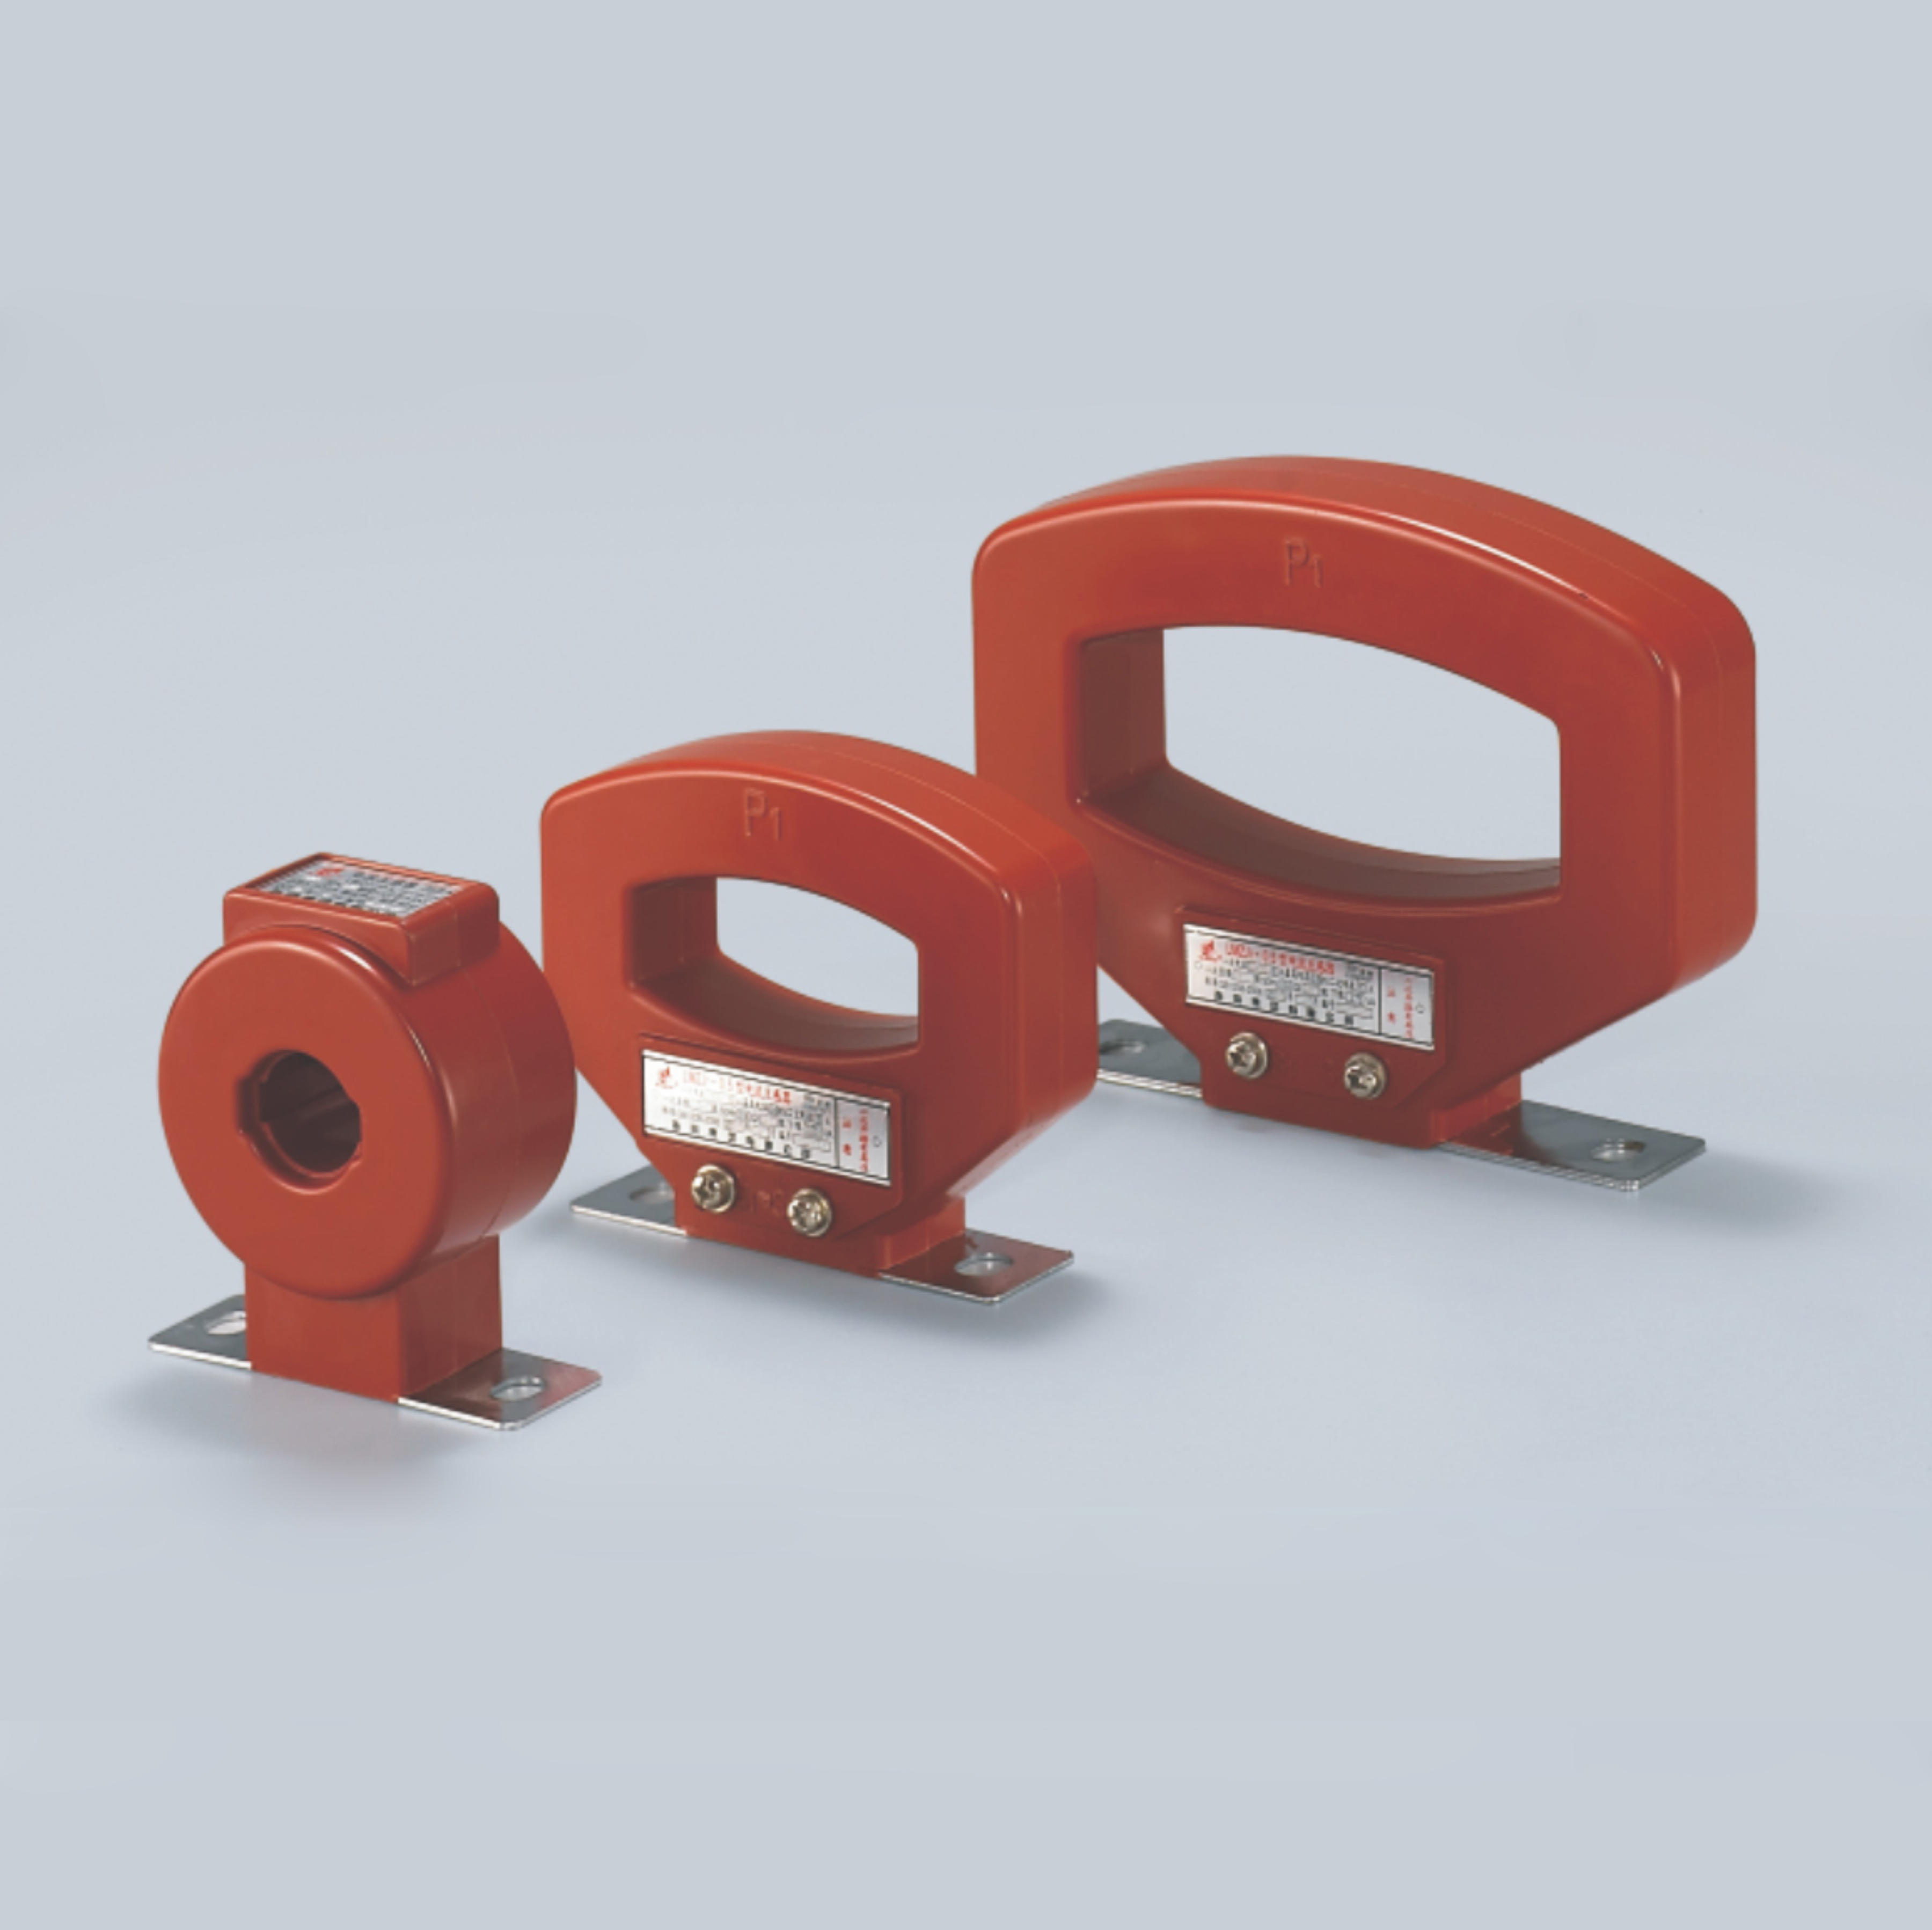 LMZJ1-0.5 Series Current Transformer